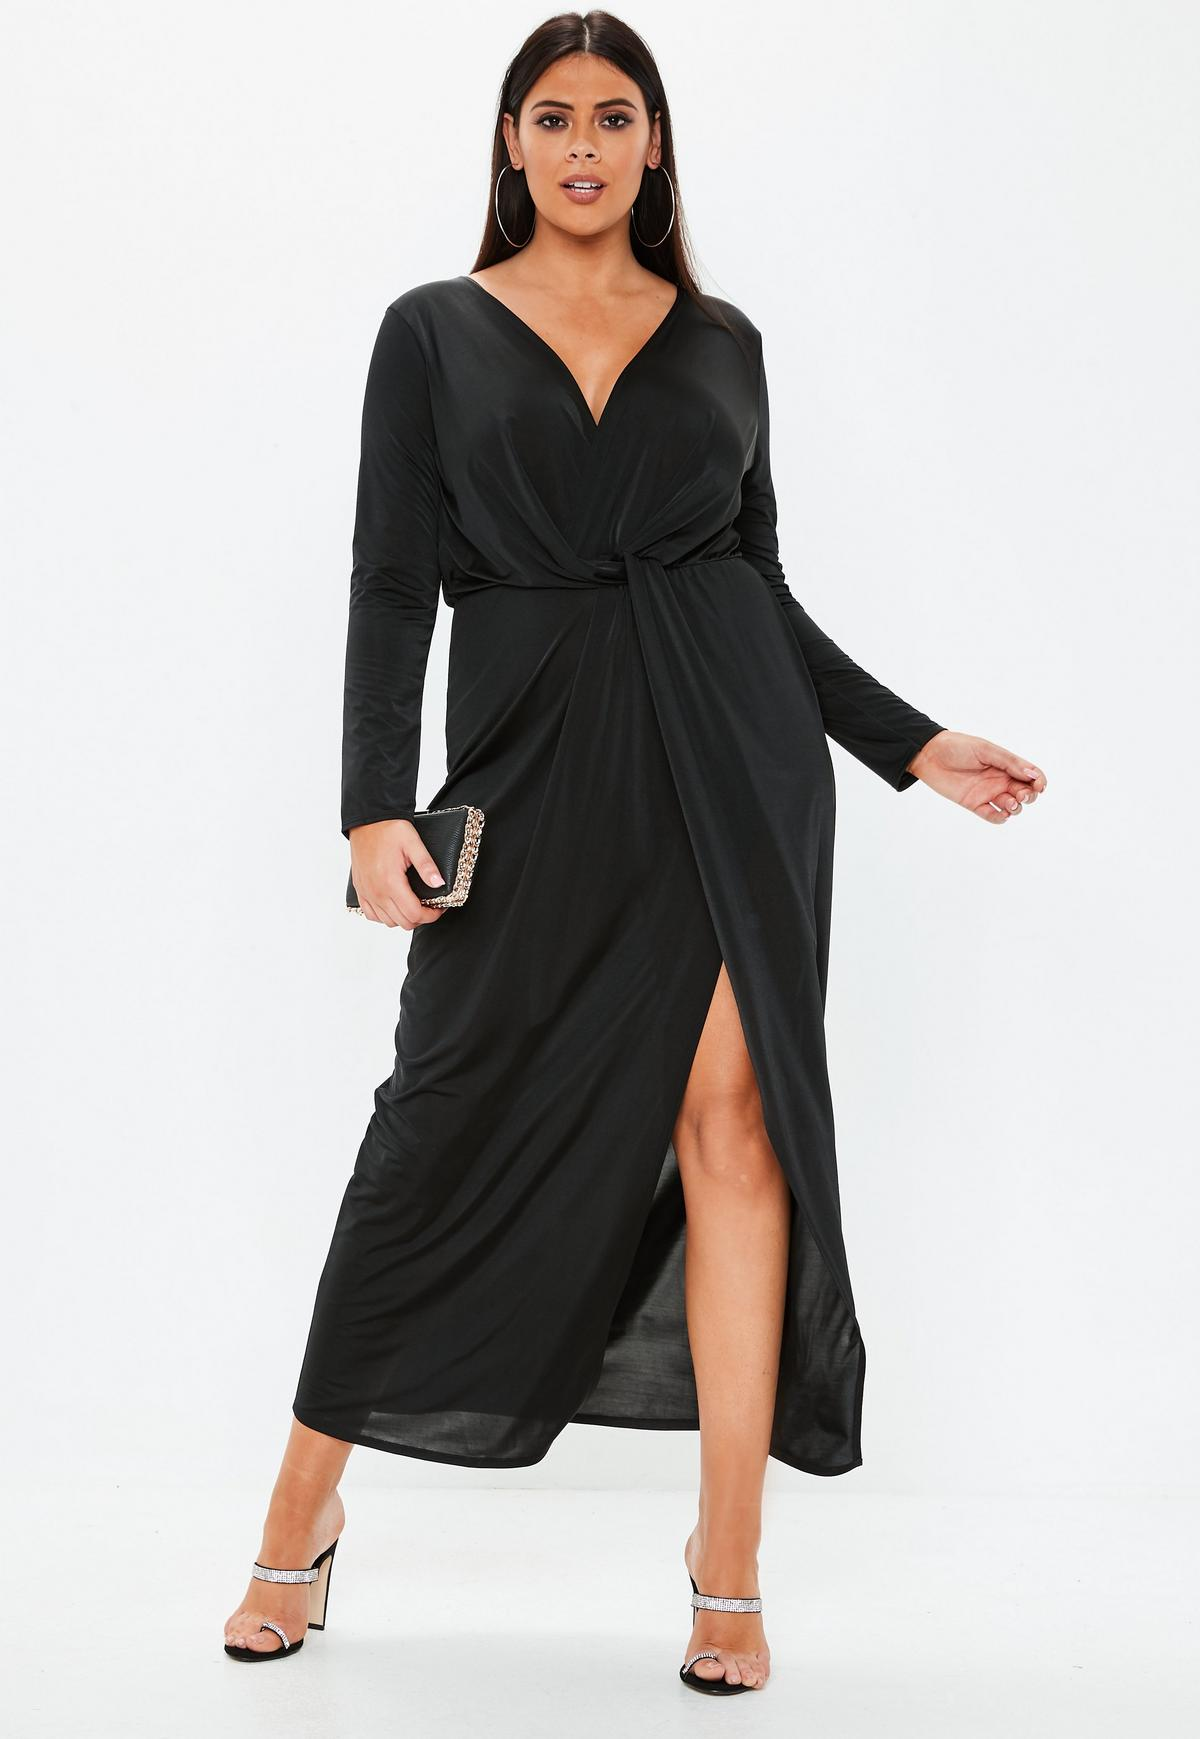 Plus Size Black Twist Front Slinky Maxi Dress